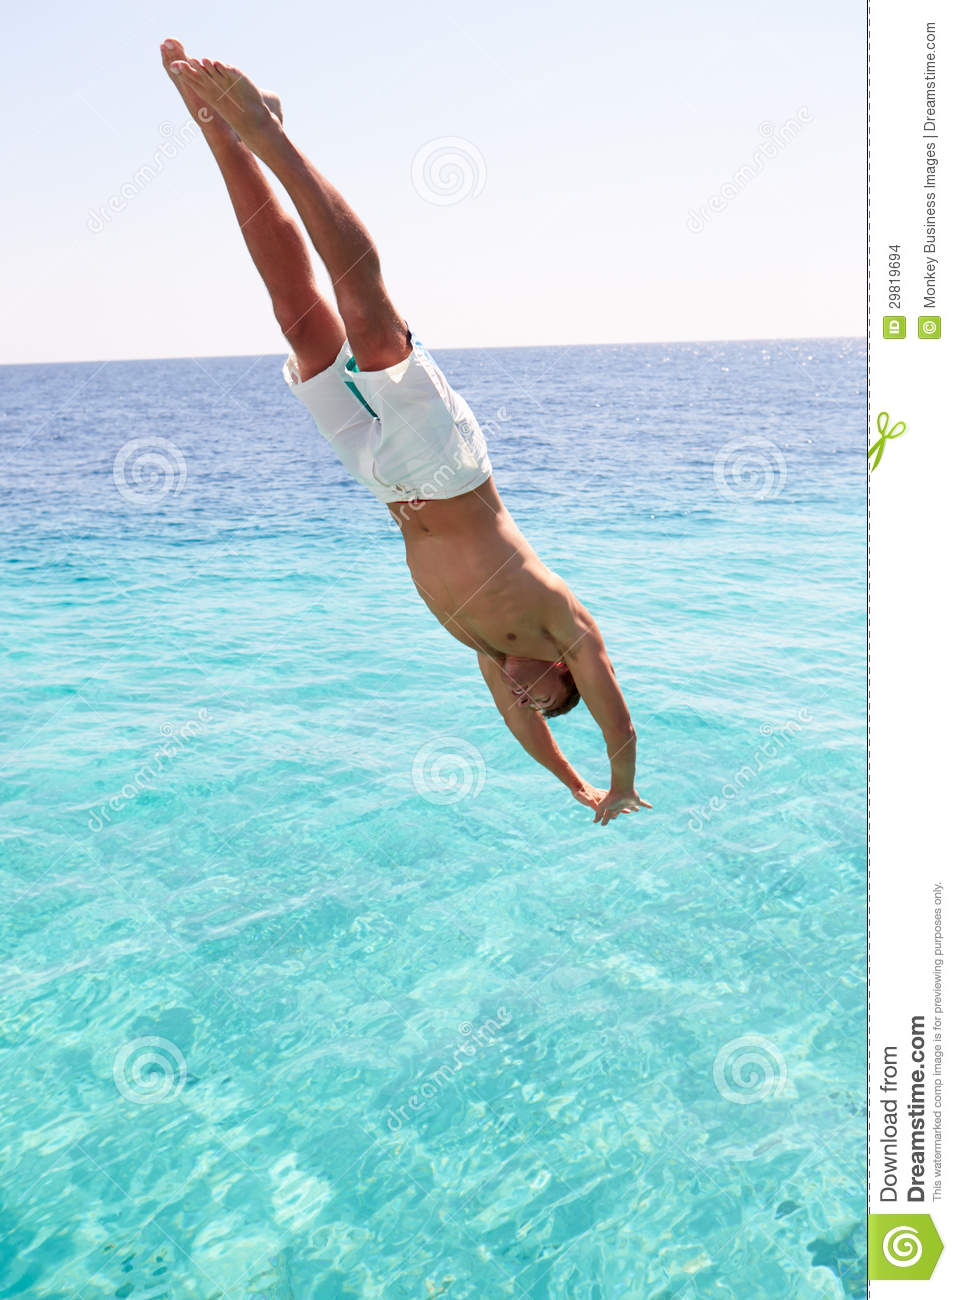 Man Diving Into Sea Stock Photo Image Of Horizontal 29819694